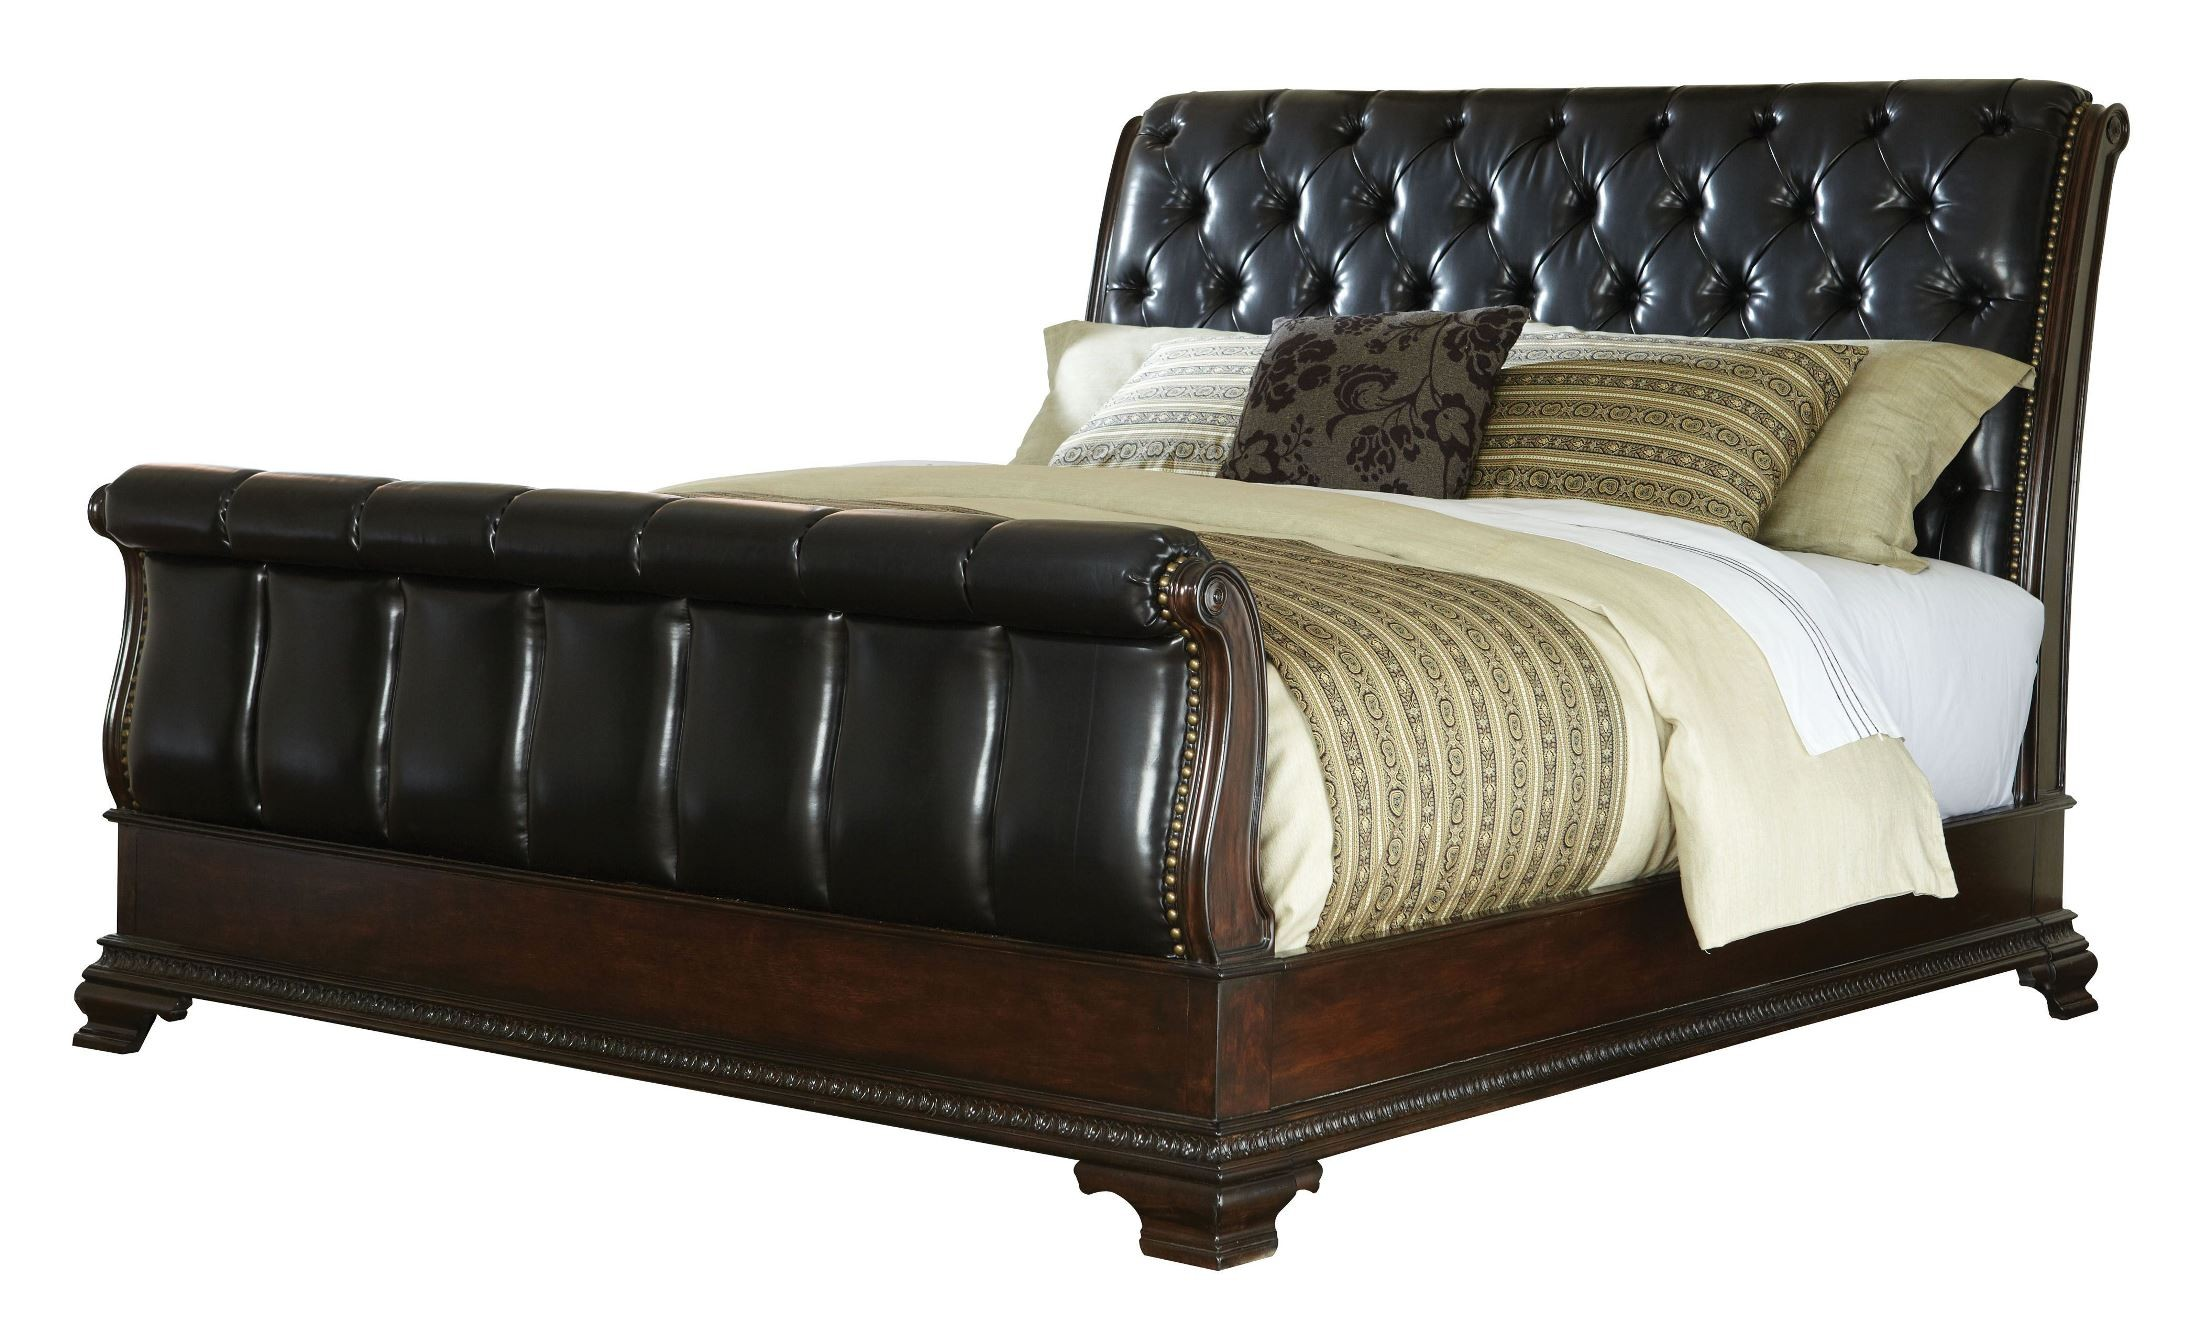 churchill cherry king upholstered sleigh bed from standard 86031 86033 86022 coleman furniture. Black Bedroom Furniture Sets. Home Design Ideas